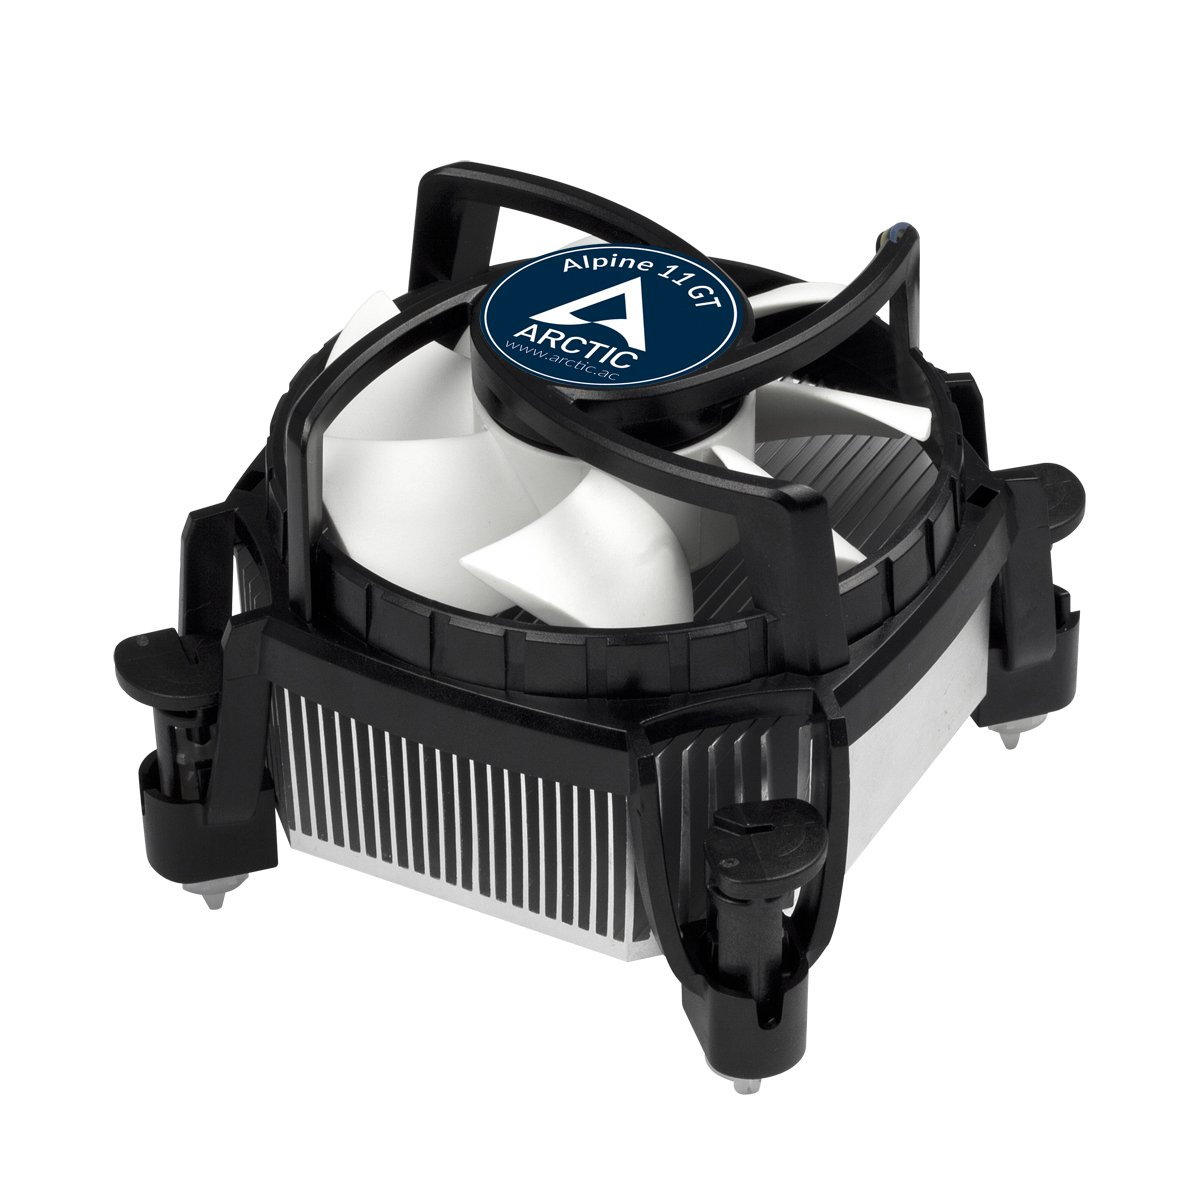 ARCTIC Alpine 11 GT Rev.2, CPU Cooler for Intel Sockets with 80 mm Fan and Pre-applied high performance thermal compound MX-2